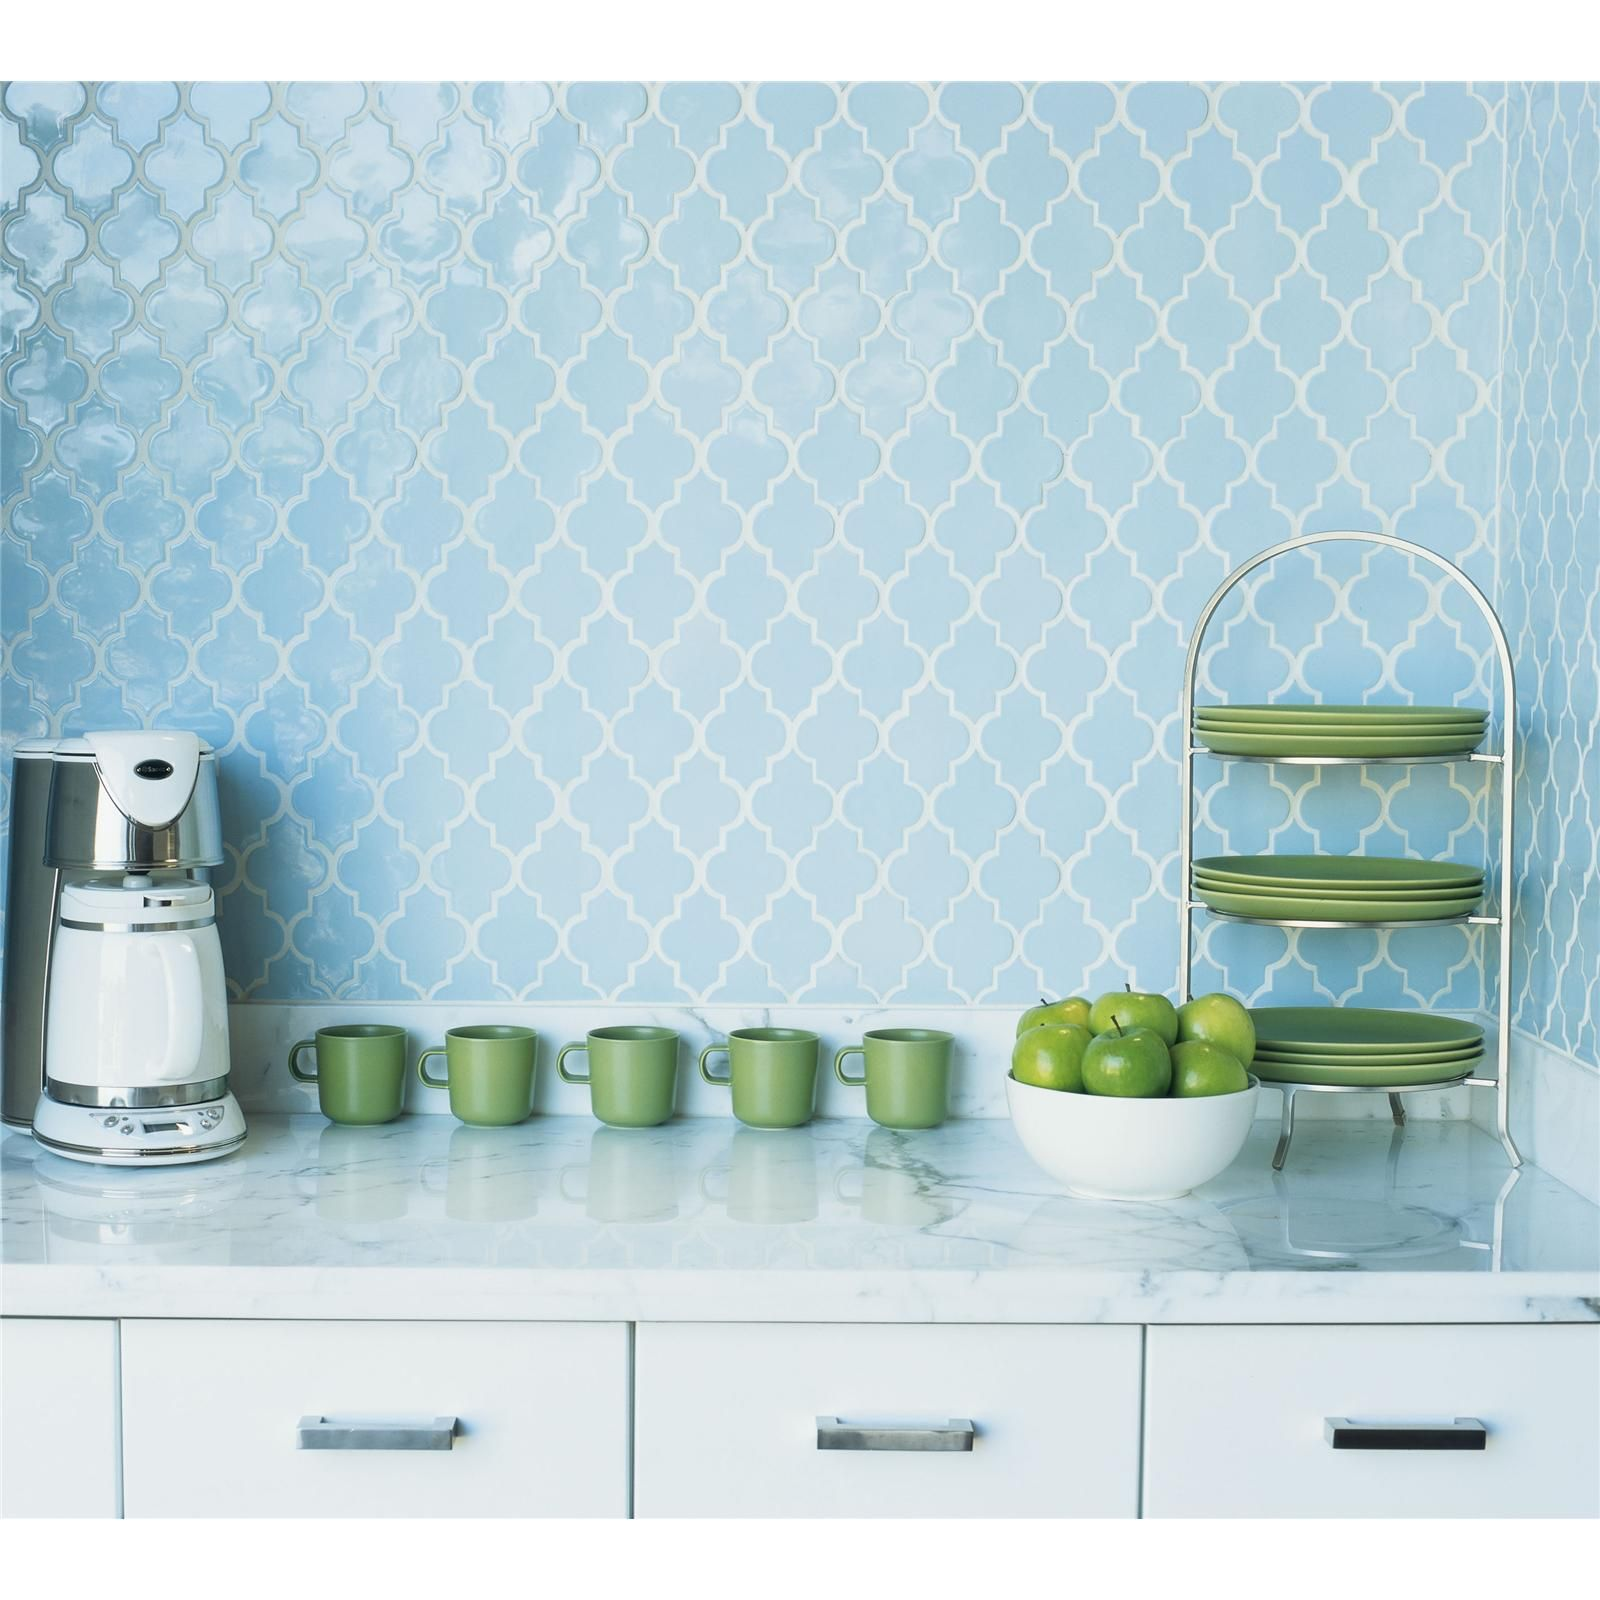 Colors for a bright kitchen egg blue tiles apple green accents gorgeous backsplash tile walker zanger ashbury tile in powder blue dailygadgetfo Image collections